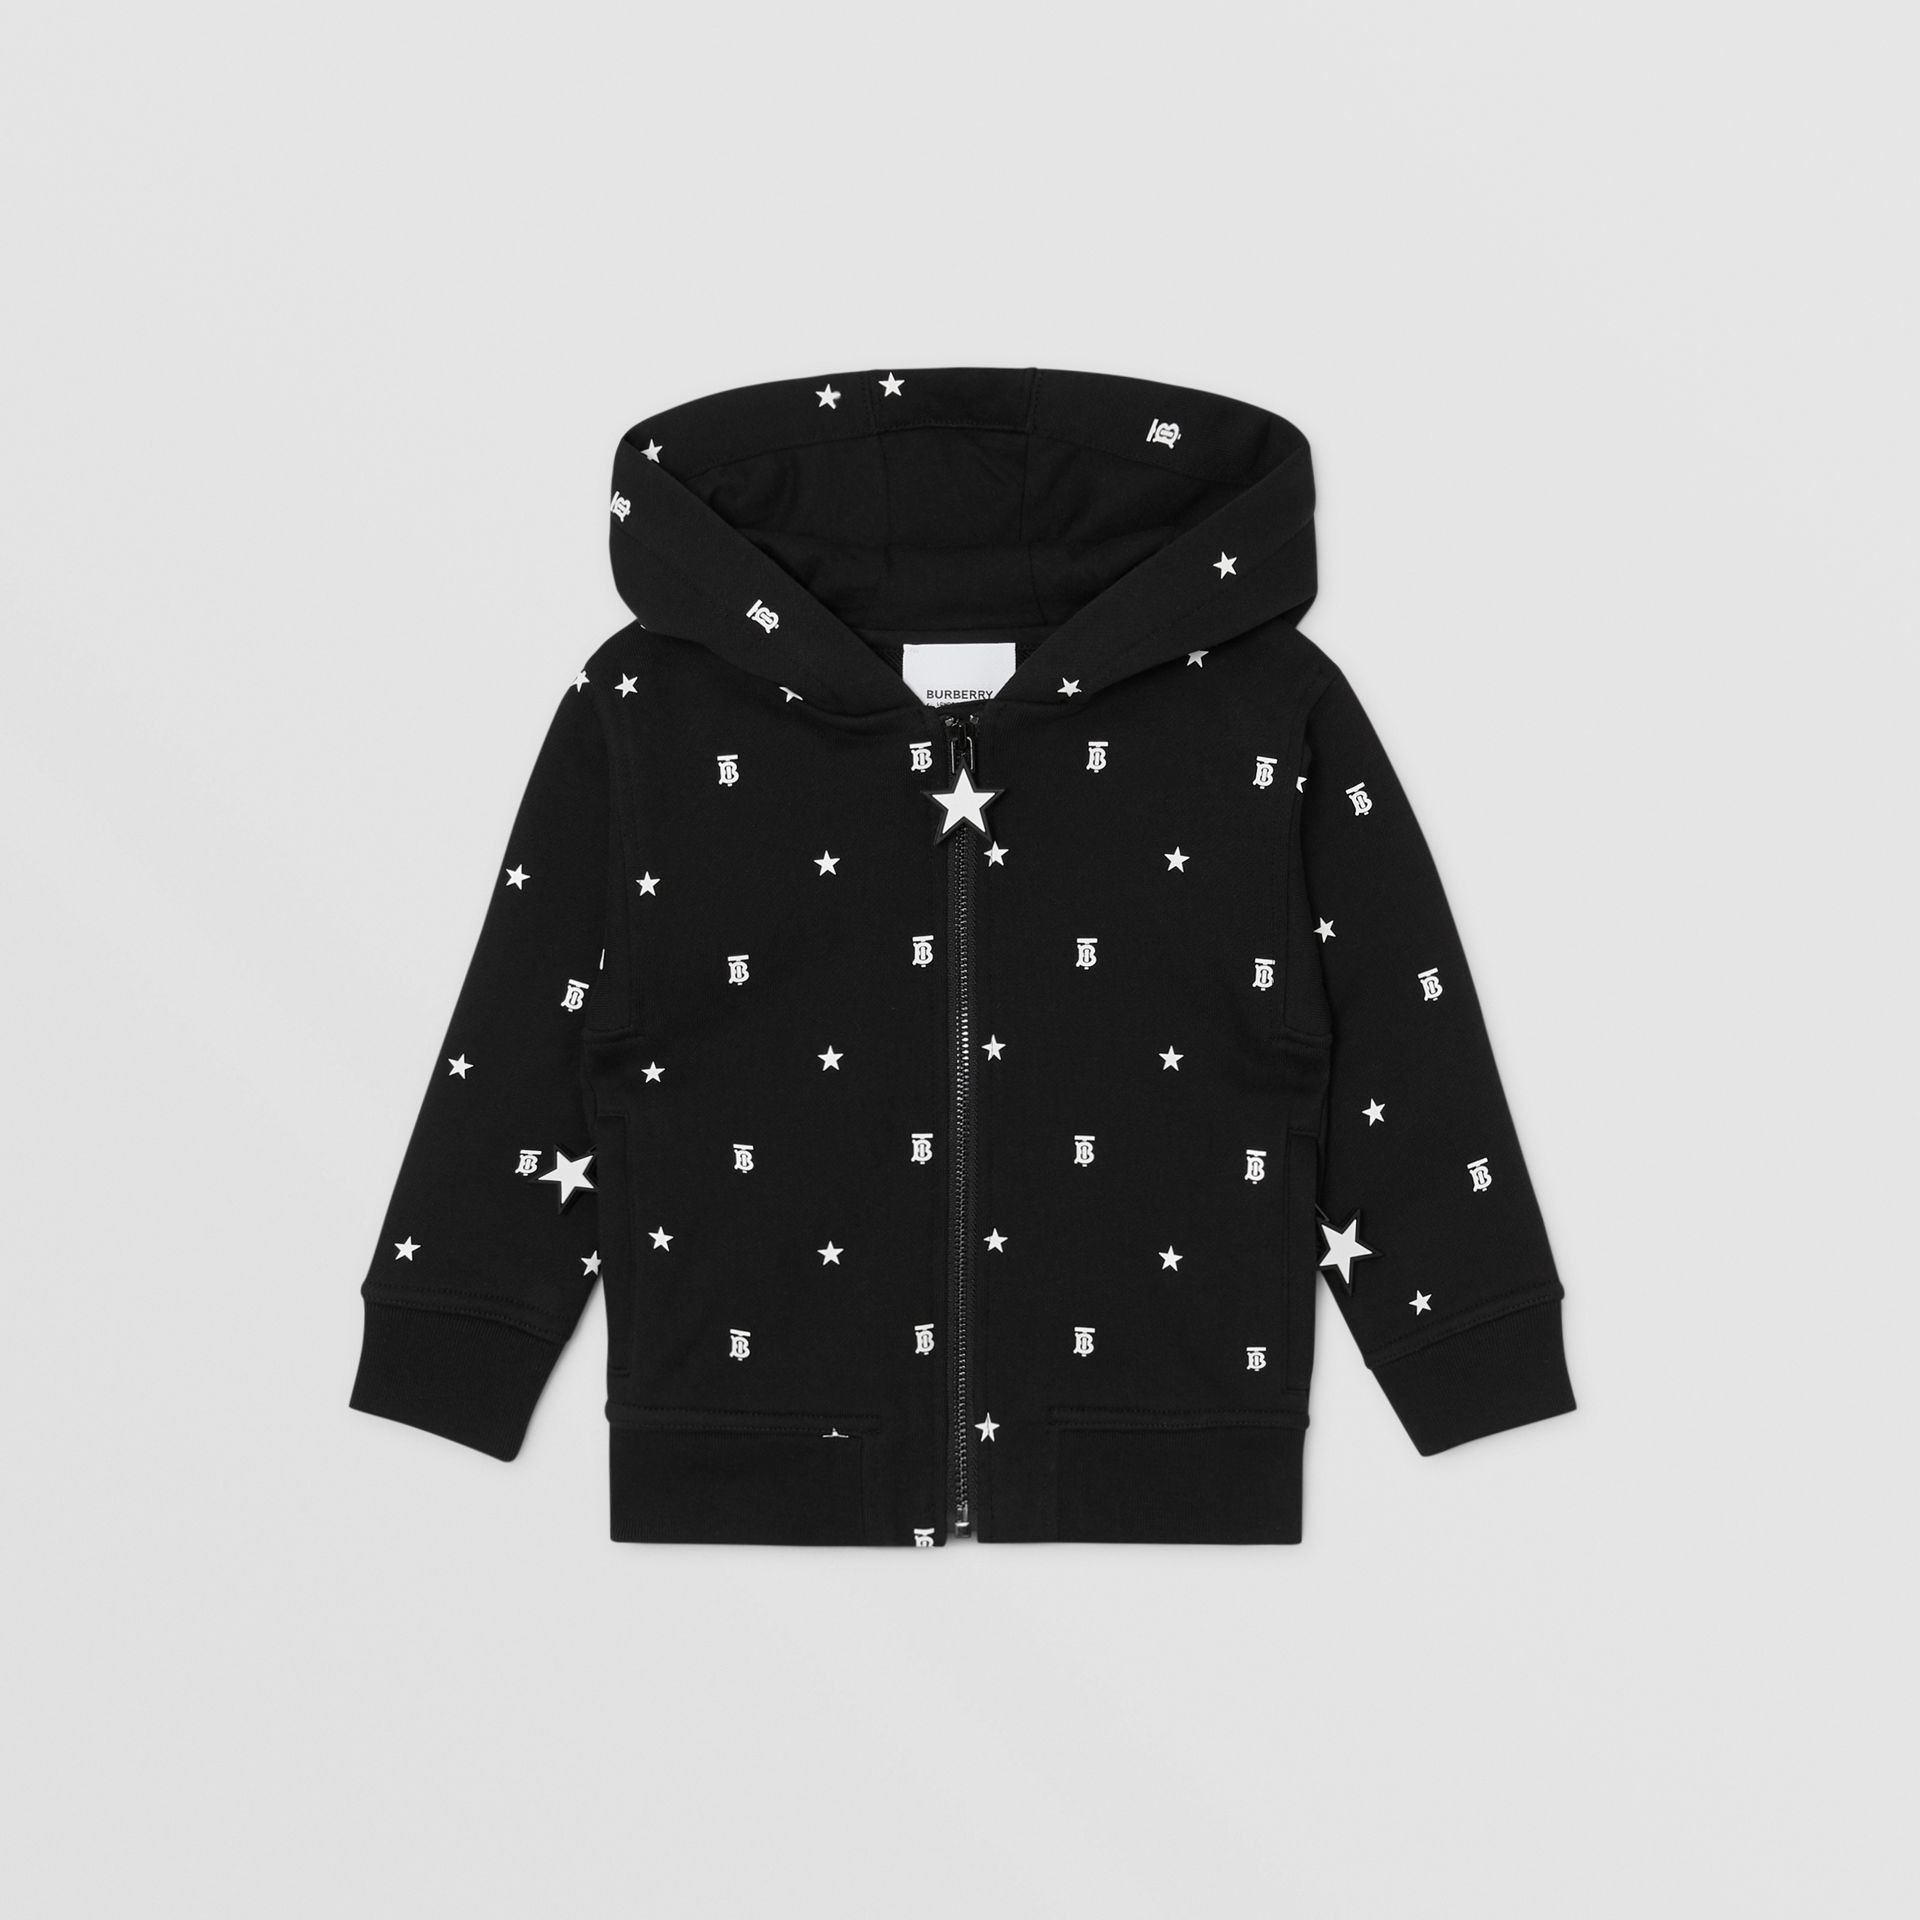 Star and Monogram Motif Cotton Hooded Top in Black - Children | Burberry - gallery image 0